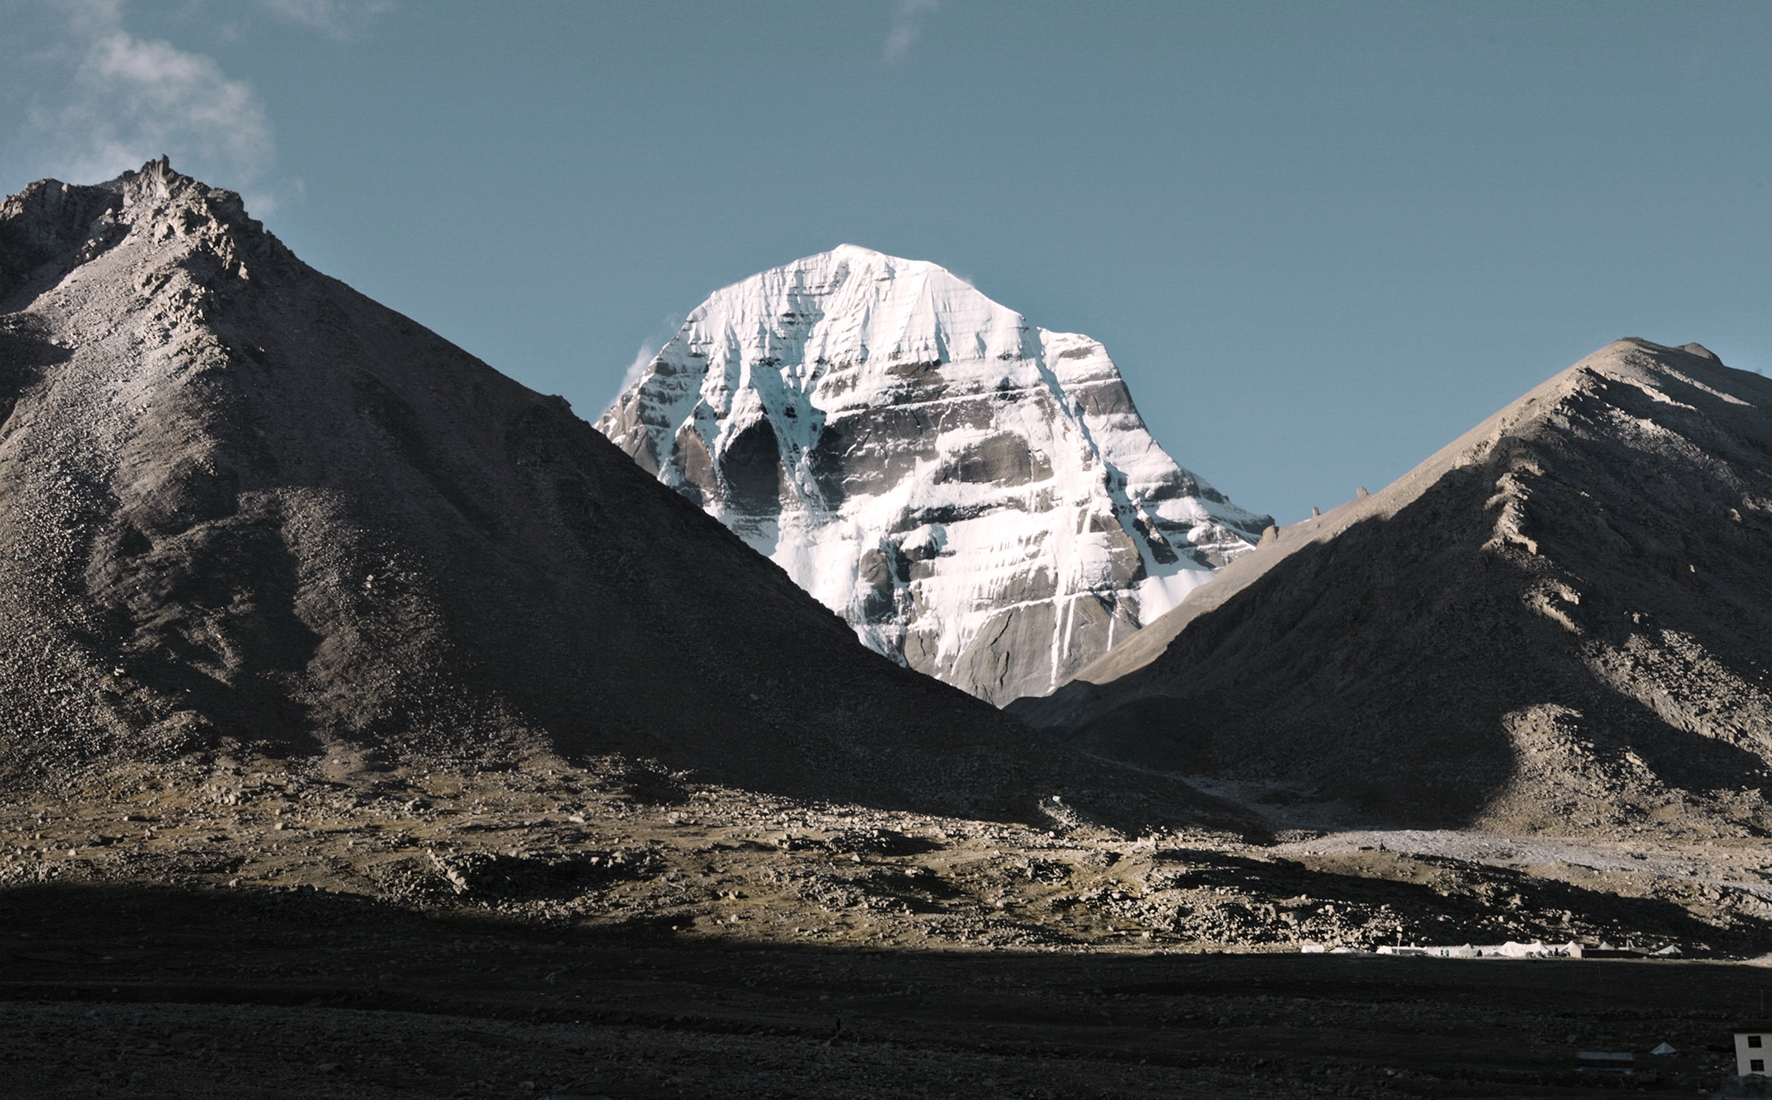 Kora Mt. Kailash Expedition 2007 Nr. 05 / Archival print on paper